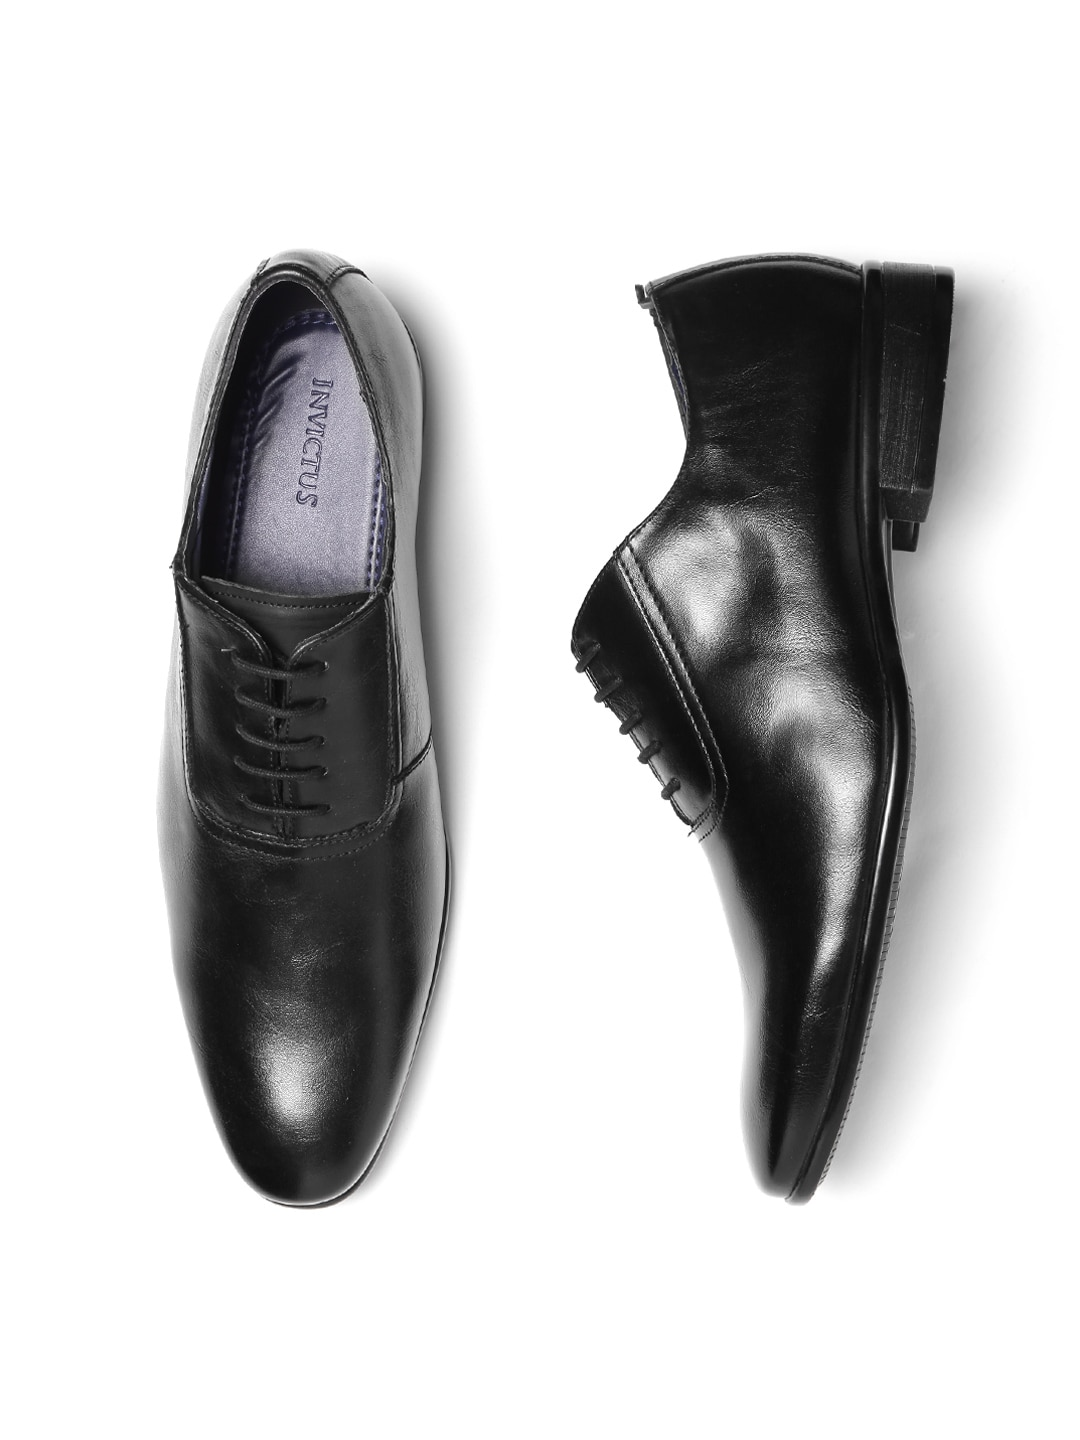 Buy INVICTUS Black Formal Oxfords At Best Price